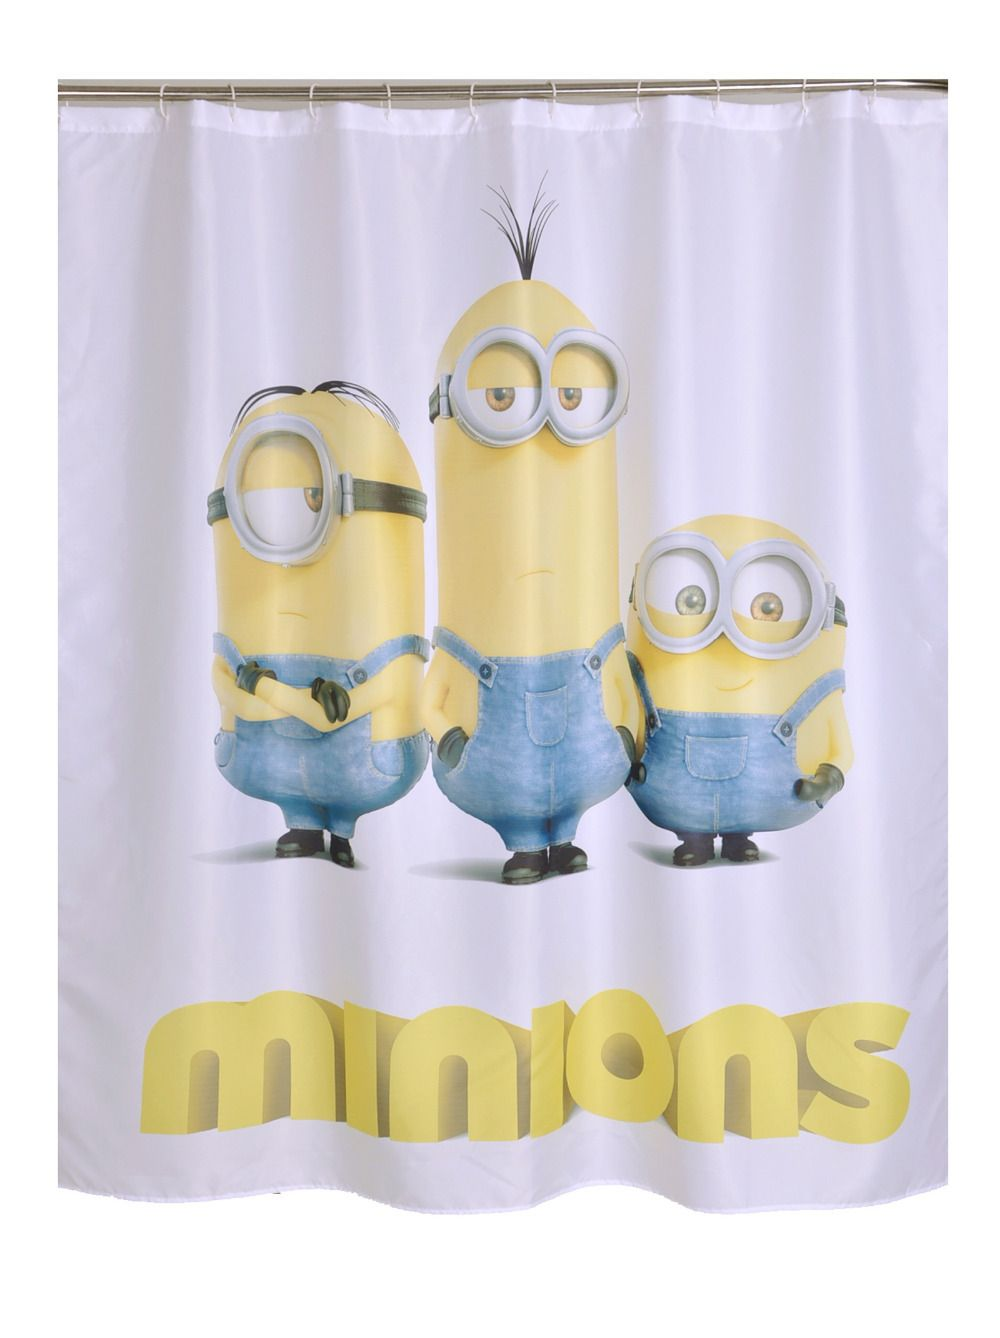 Bathroom Products Polyester Fabric Minions Cartoon Printed Shower